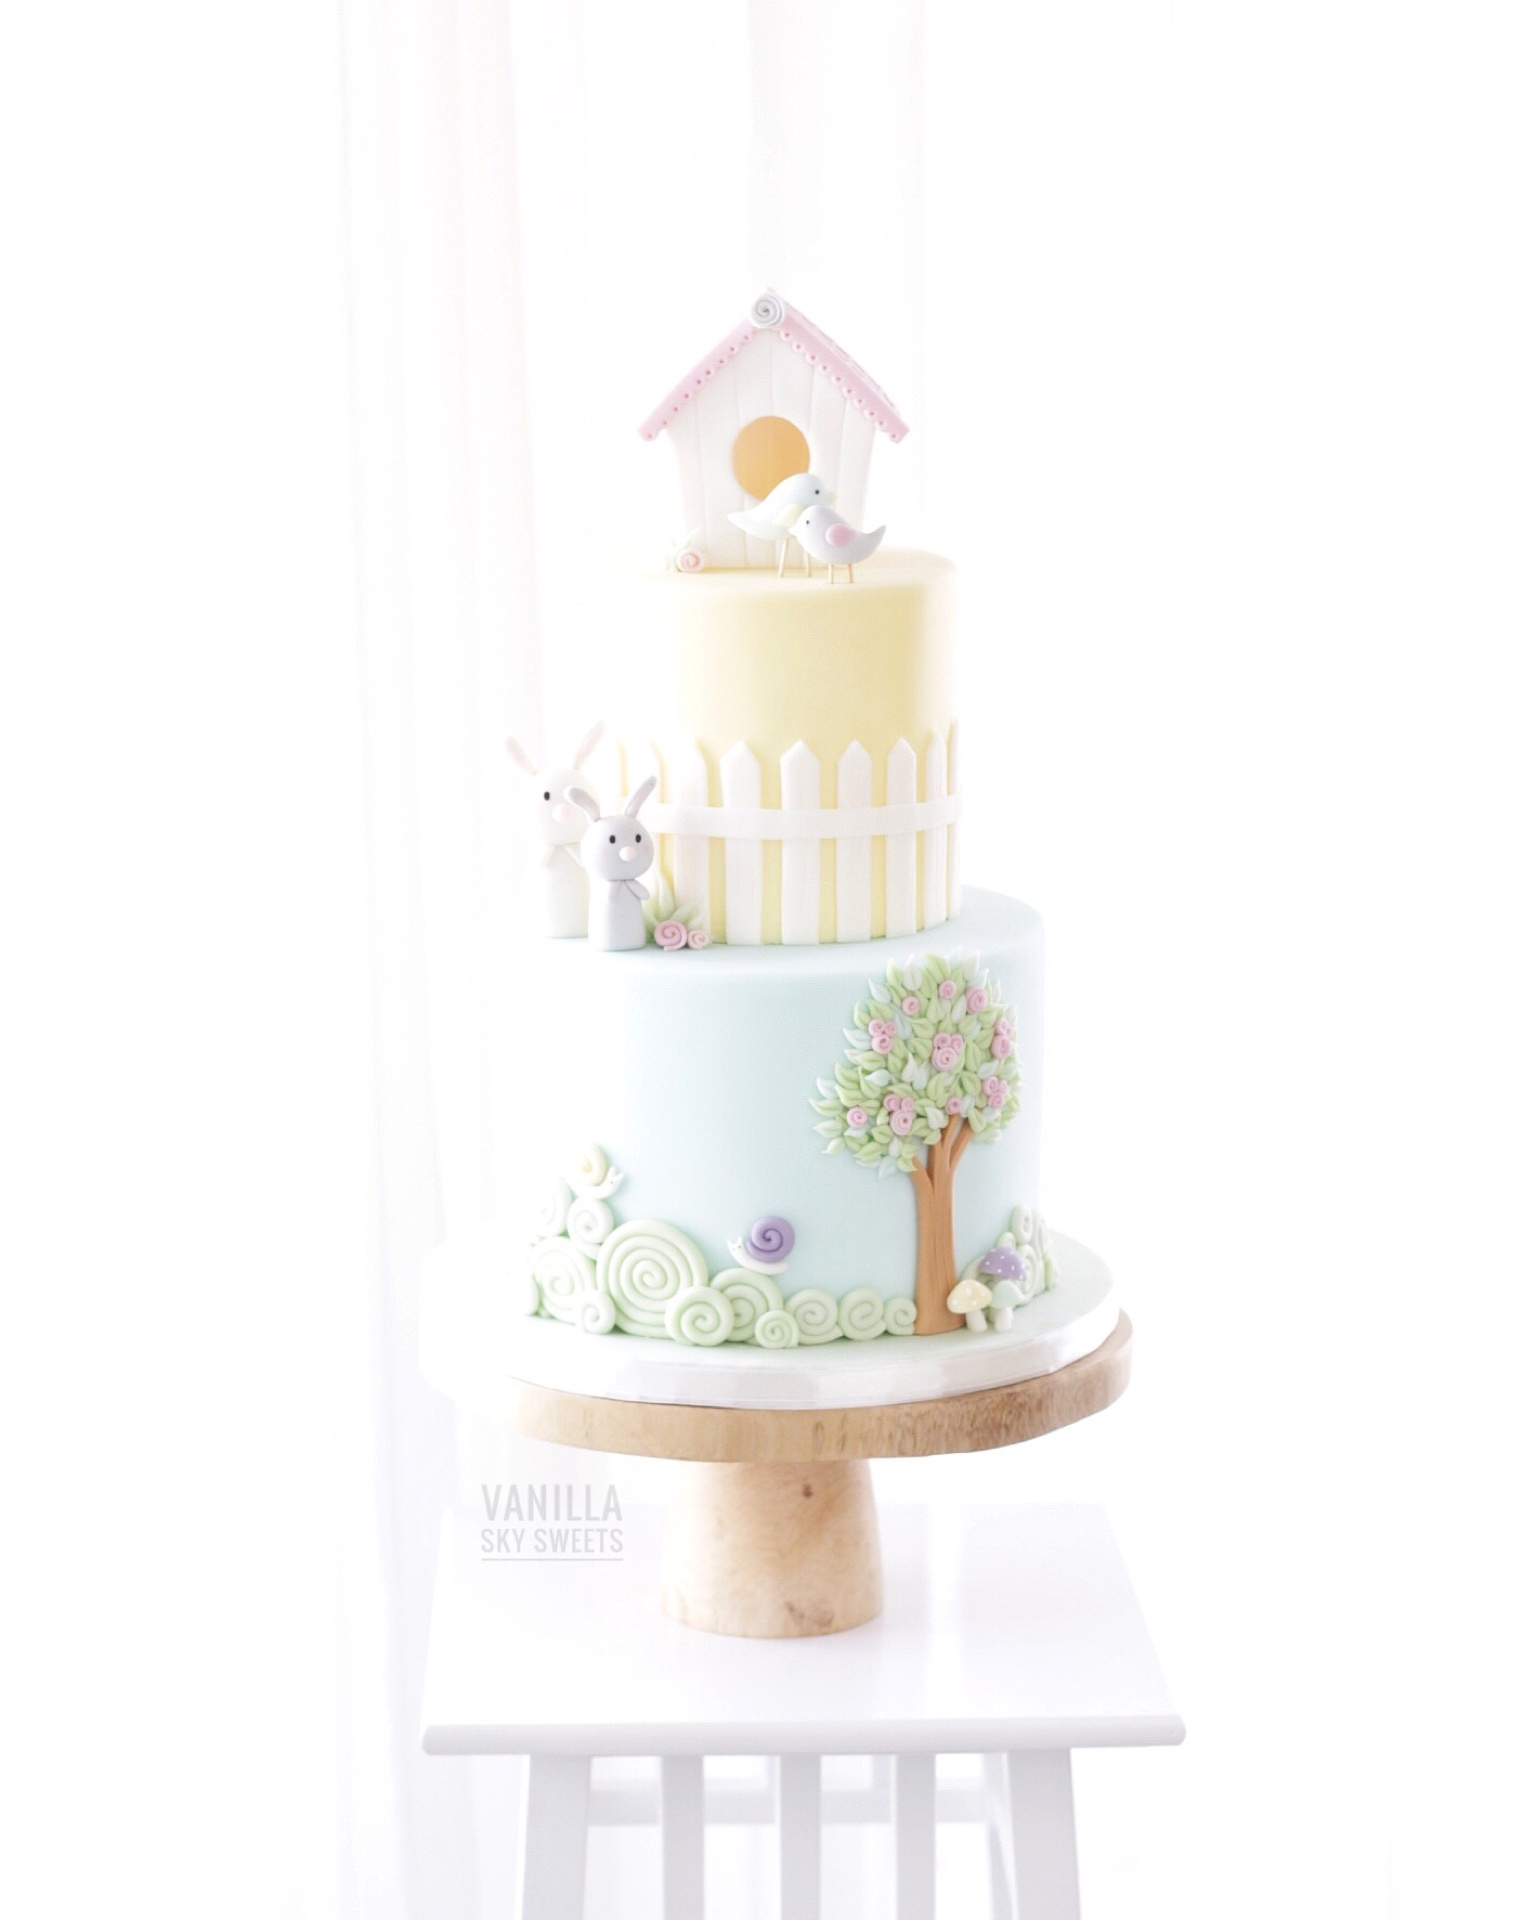 Cute Birdhouse and bunny themed cake